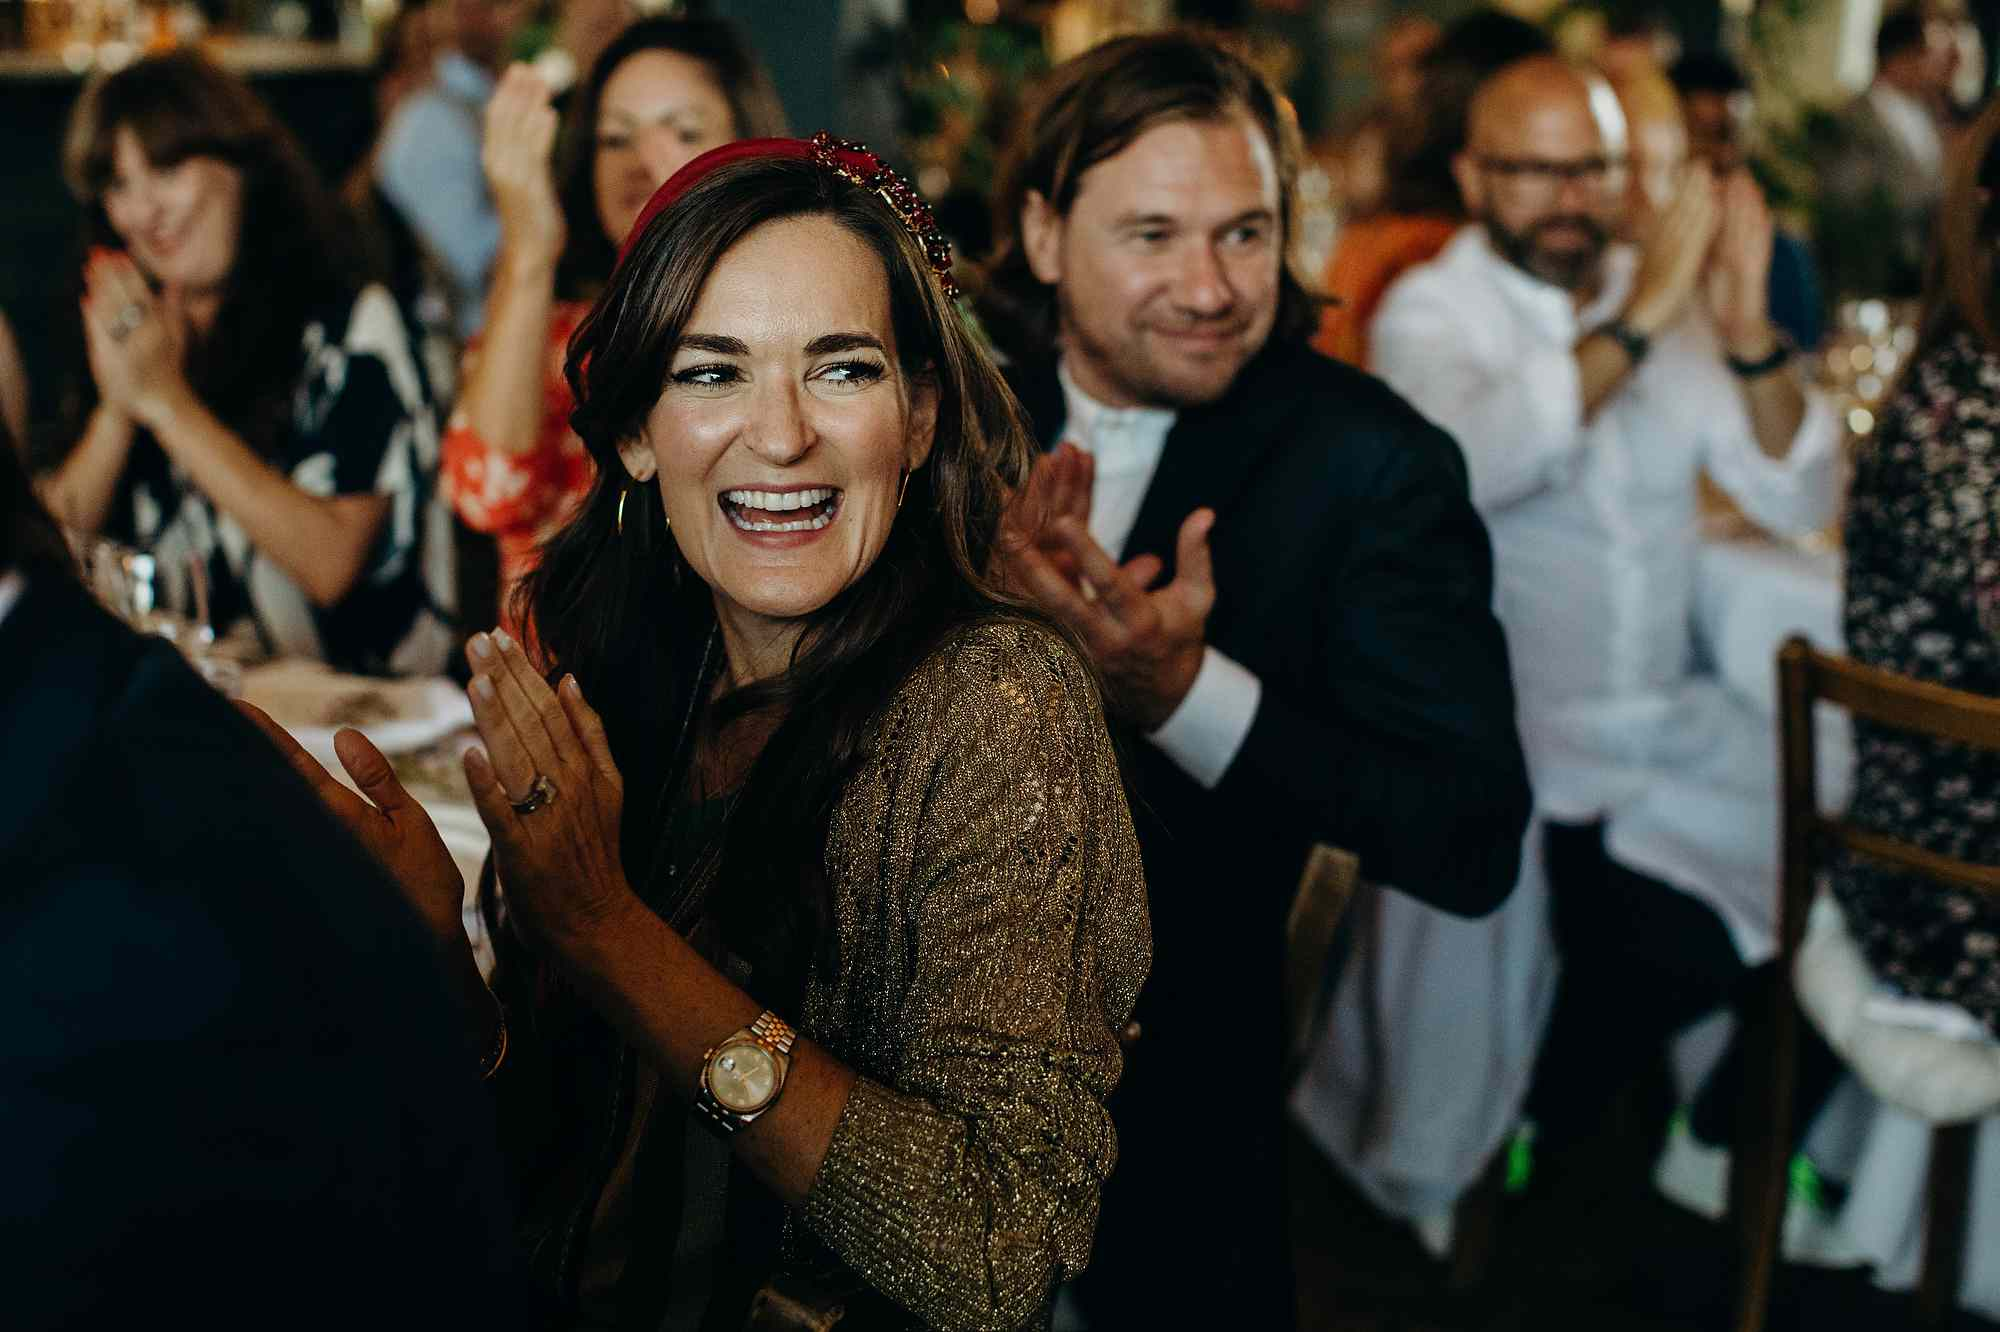 woman at a wedding clapping